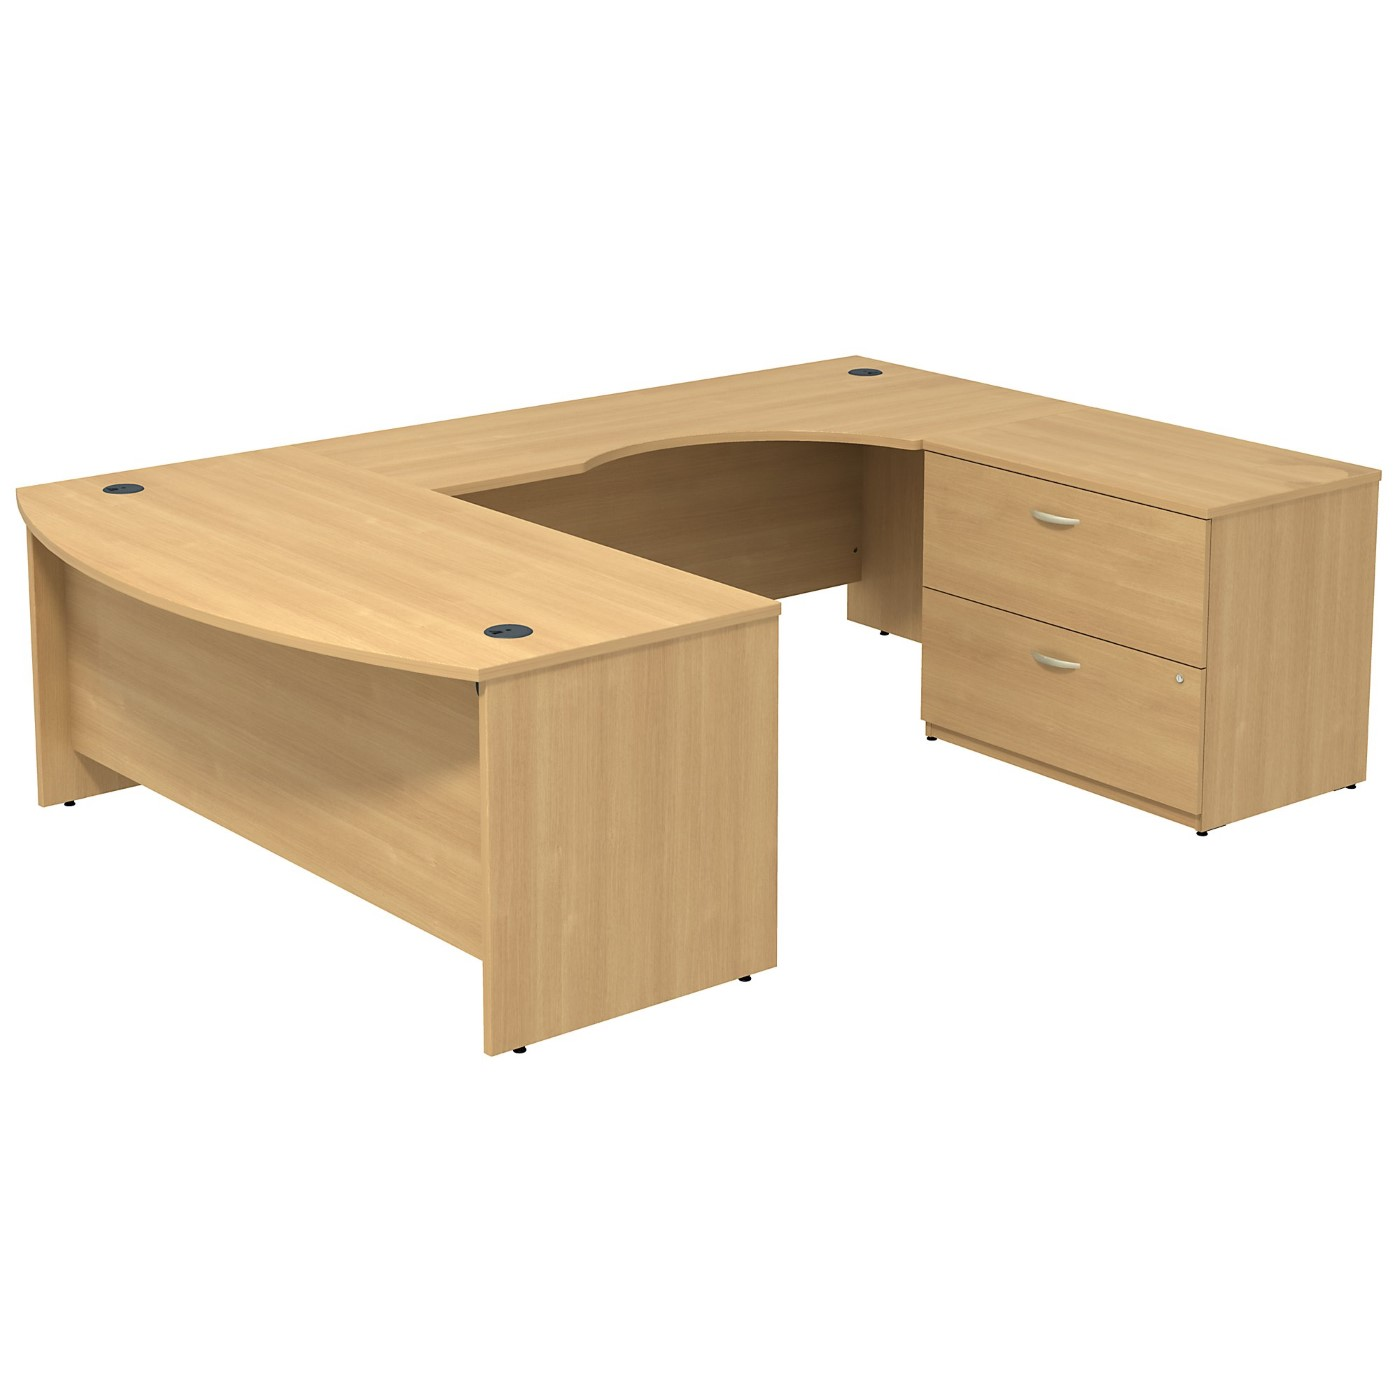 BUSH BUSINESS FURNITURE SERIES C BOW FRONT RIGHT HANDED U SHAPED DESK WITH 2 DRAWER LATERAL FILE CABINET. FREE SHIPPING SALE DEDUCT 10% MORE ENTER '10percent' IN COUPON CODE BOX WHILE CHECKING OUT.